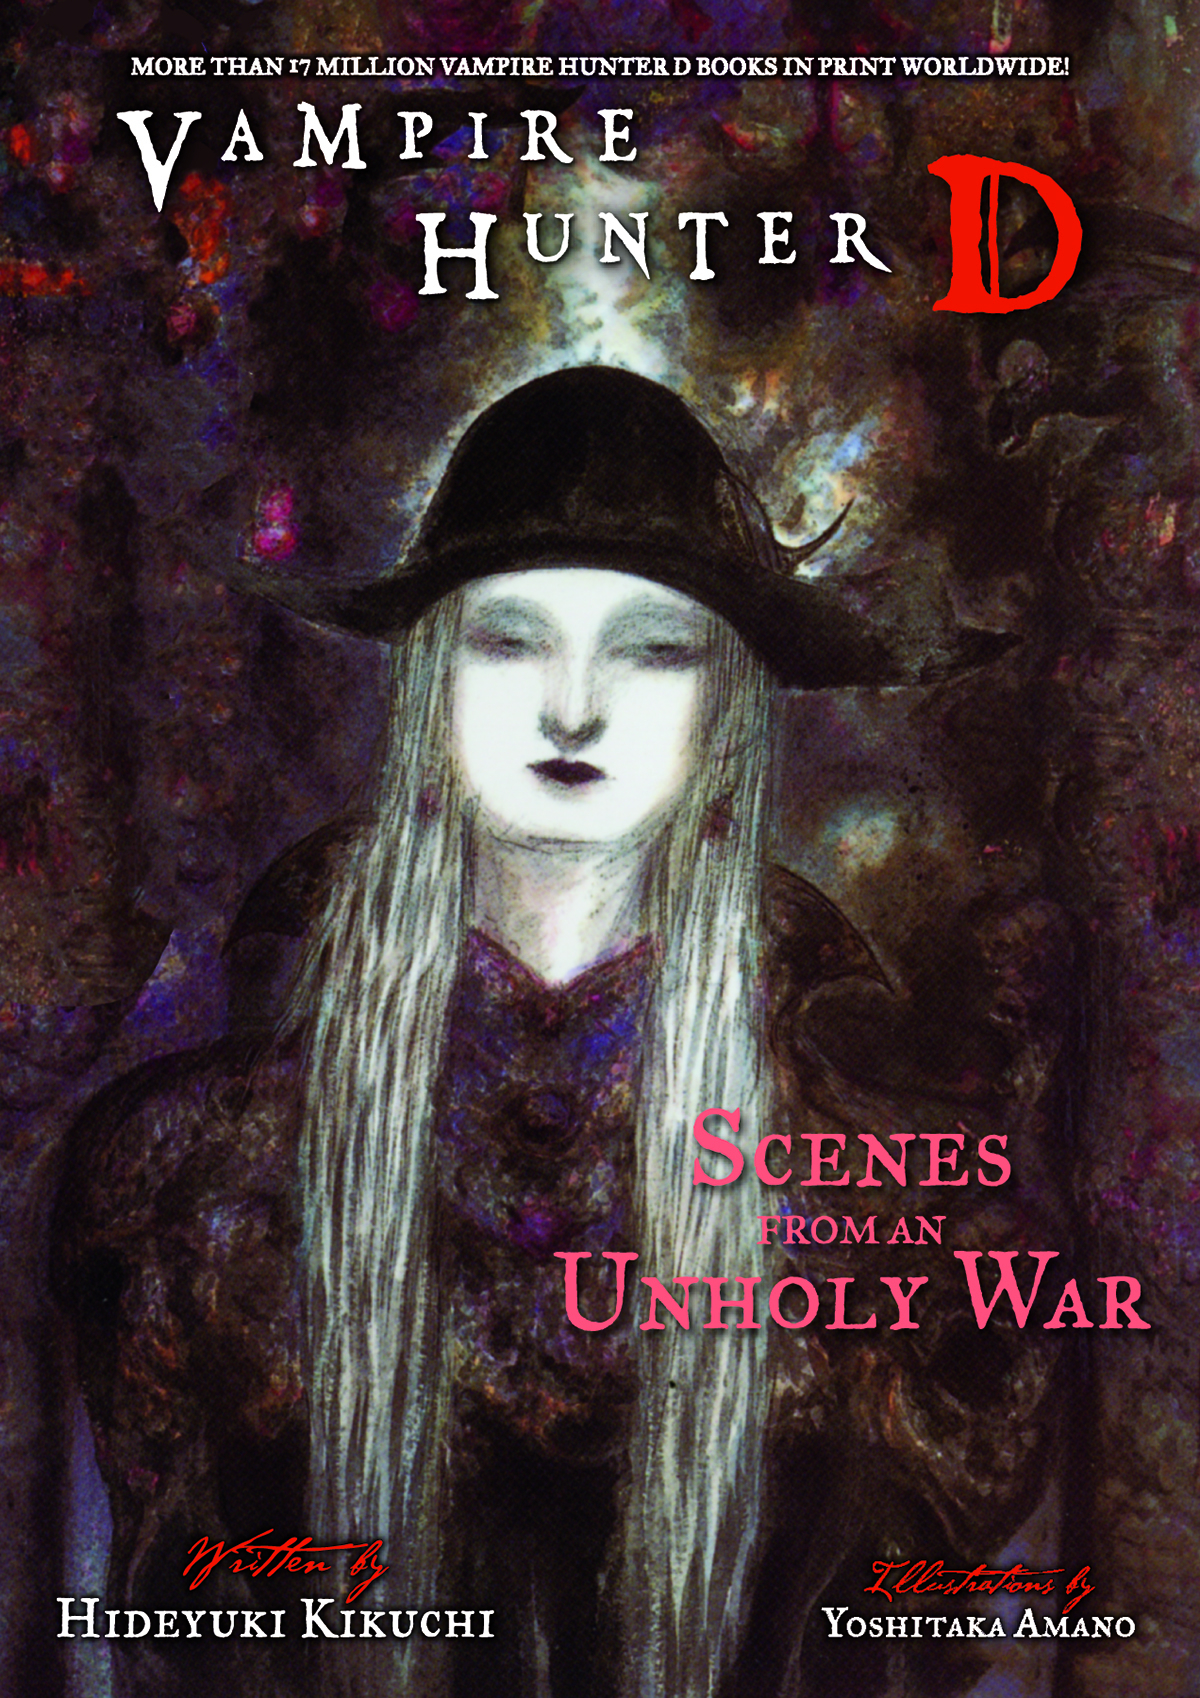 VAMPIRE HUNTER D NOVEL VOL 20 SCENES UNHOLY WAR